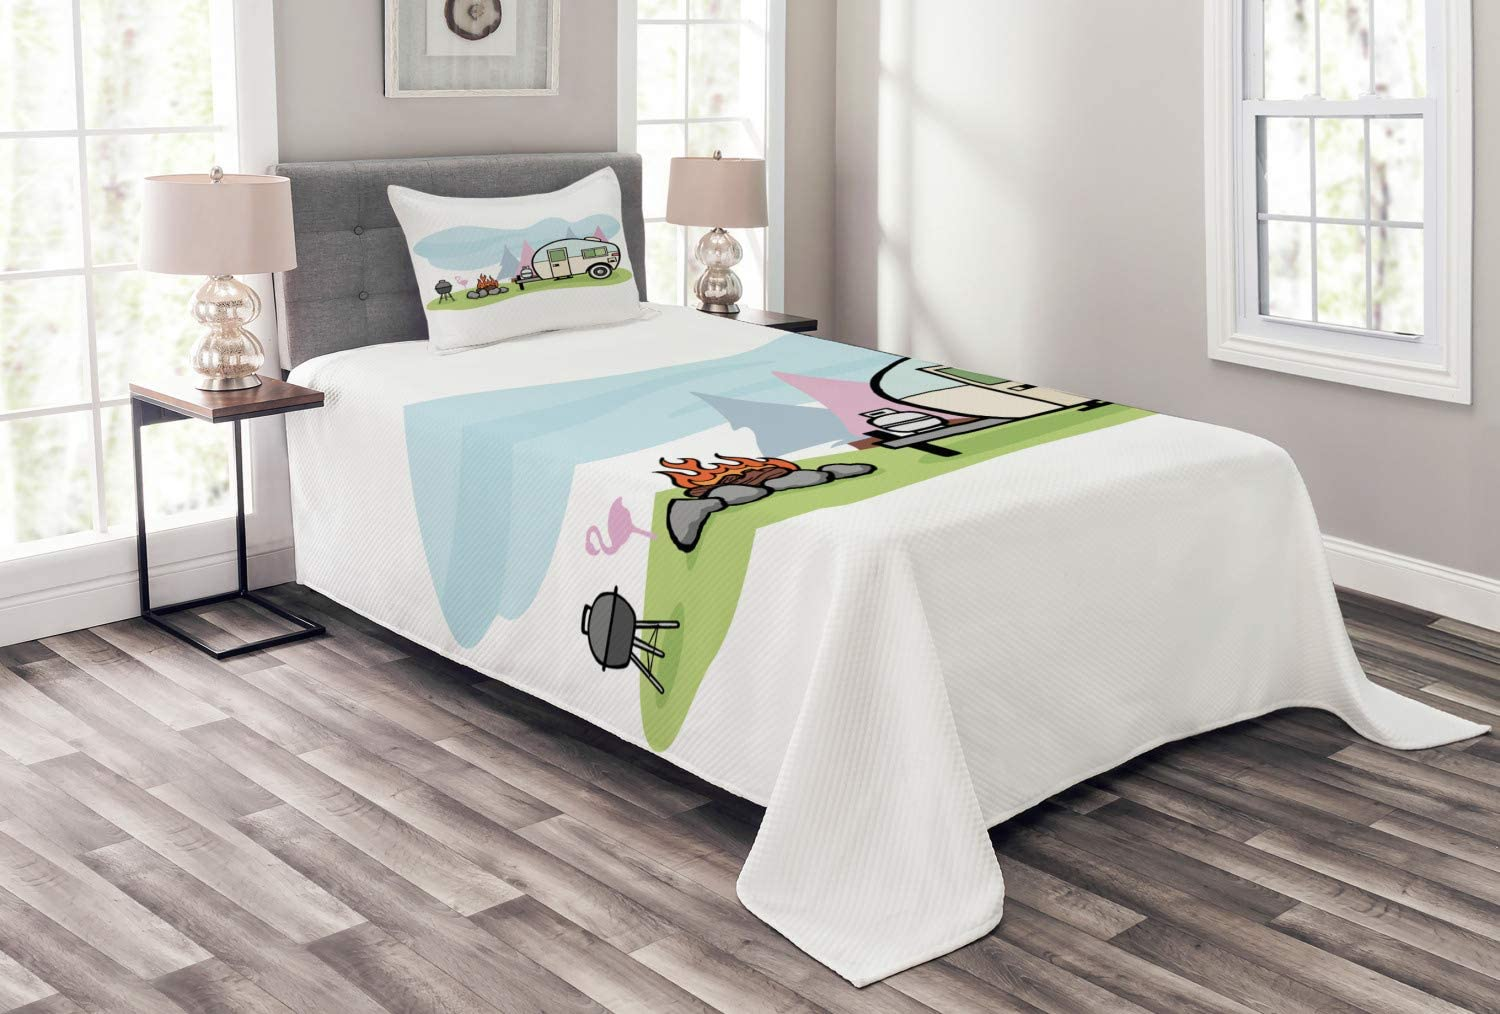 Ambesonne Travel Many popular brands Bedspread Cartoon Style a of Cheap mail order specialty store Design Camping Sc